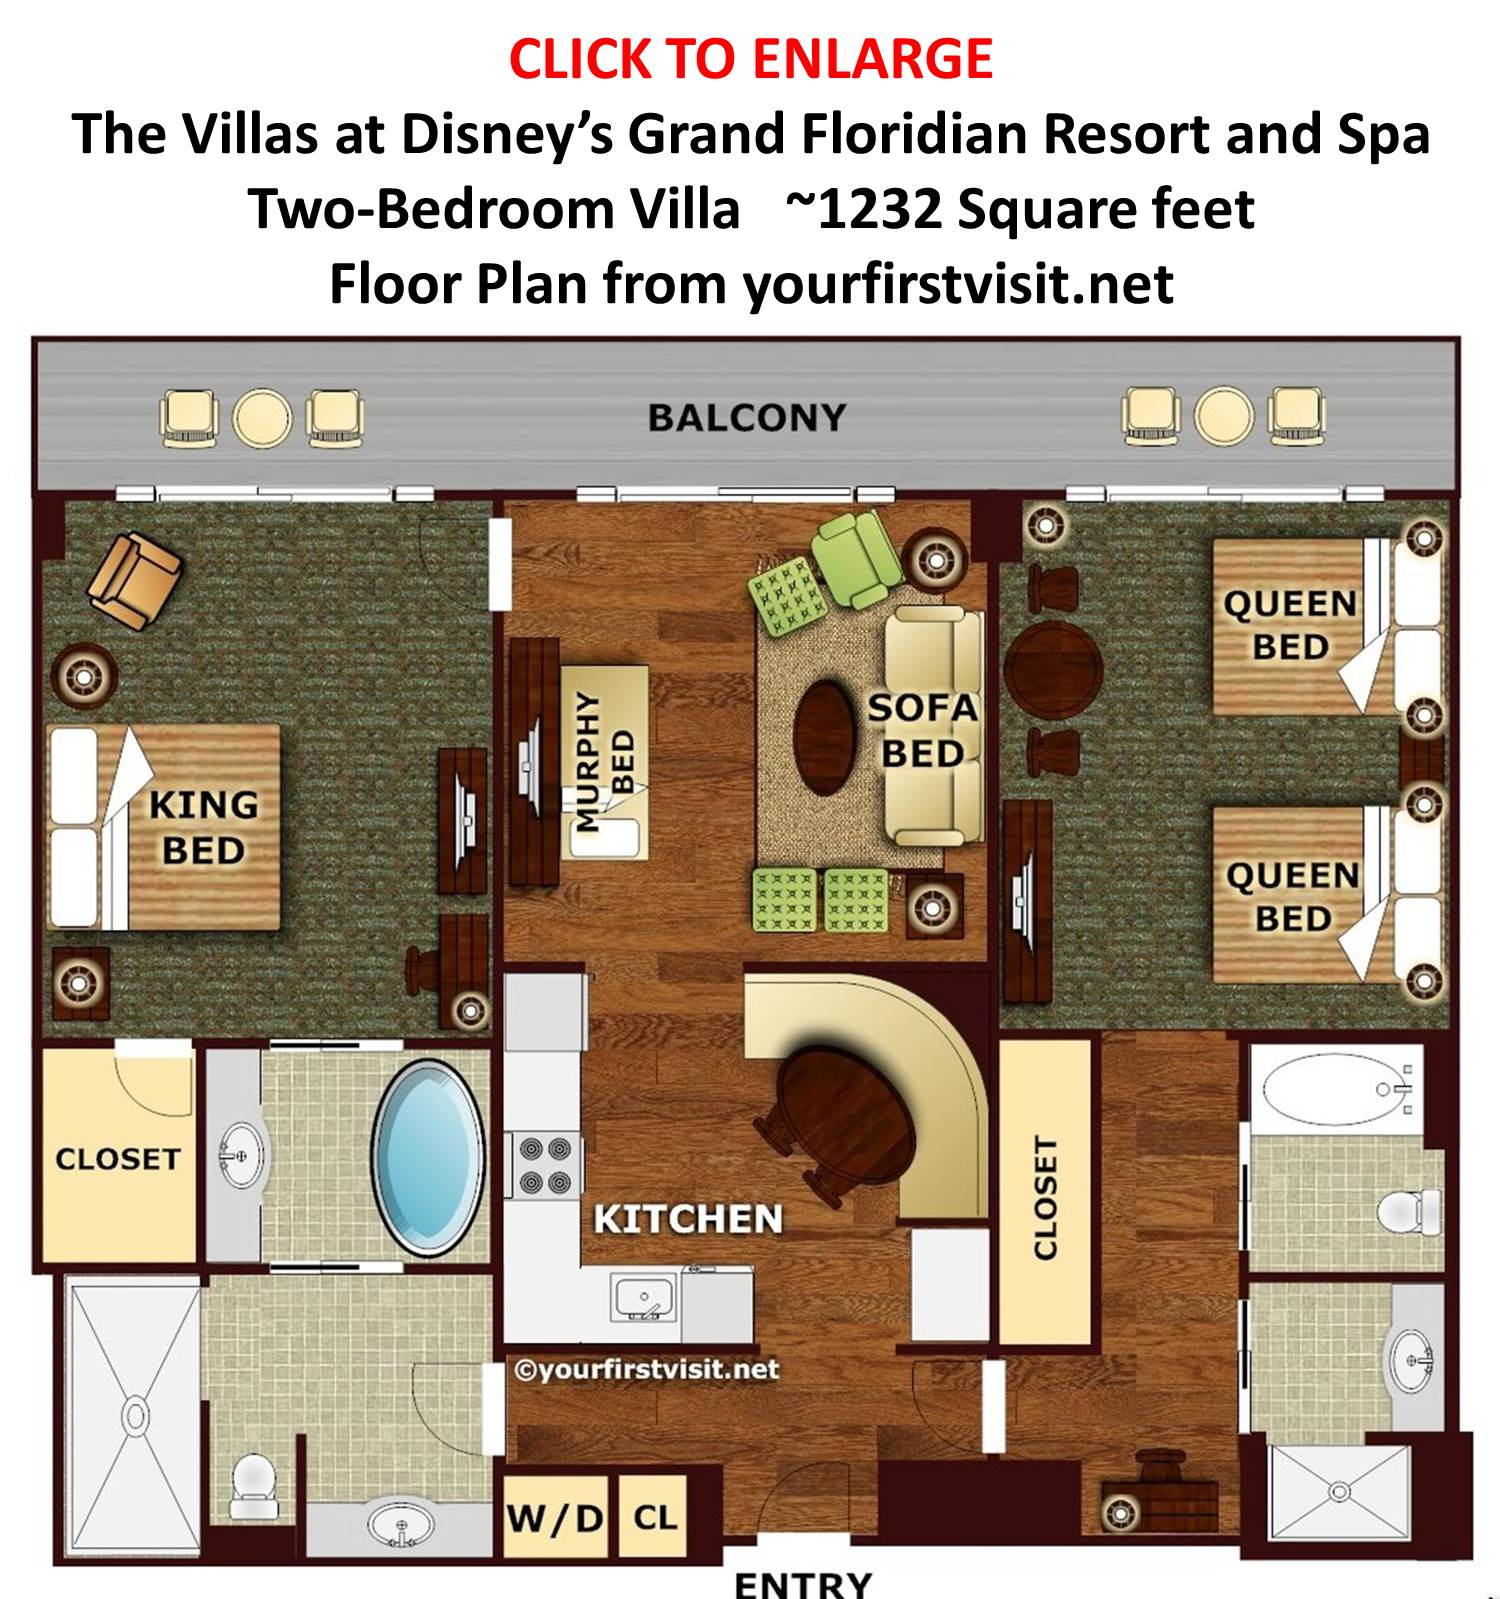 grand floridian 2 bedroom villa. Floor Plan Two Bedroom Villa at Disney s Grand Floridian from  yourfirstvisit net Quick Update on the Meet Up 2nd FastPass Test and More